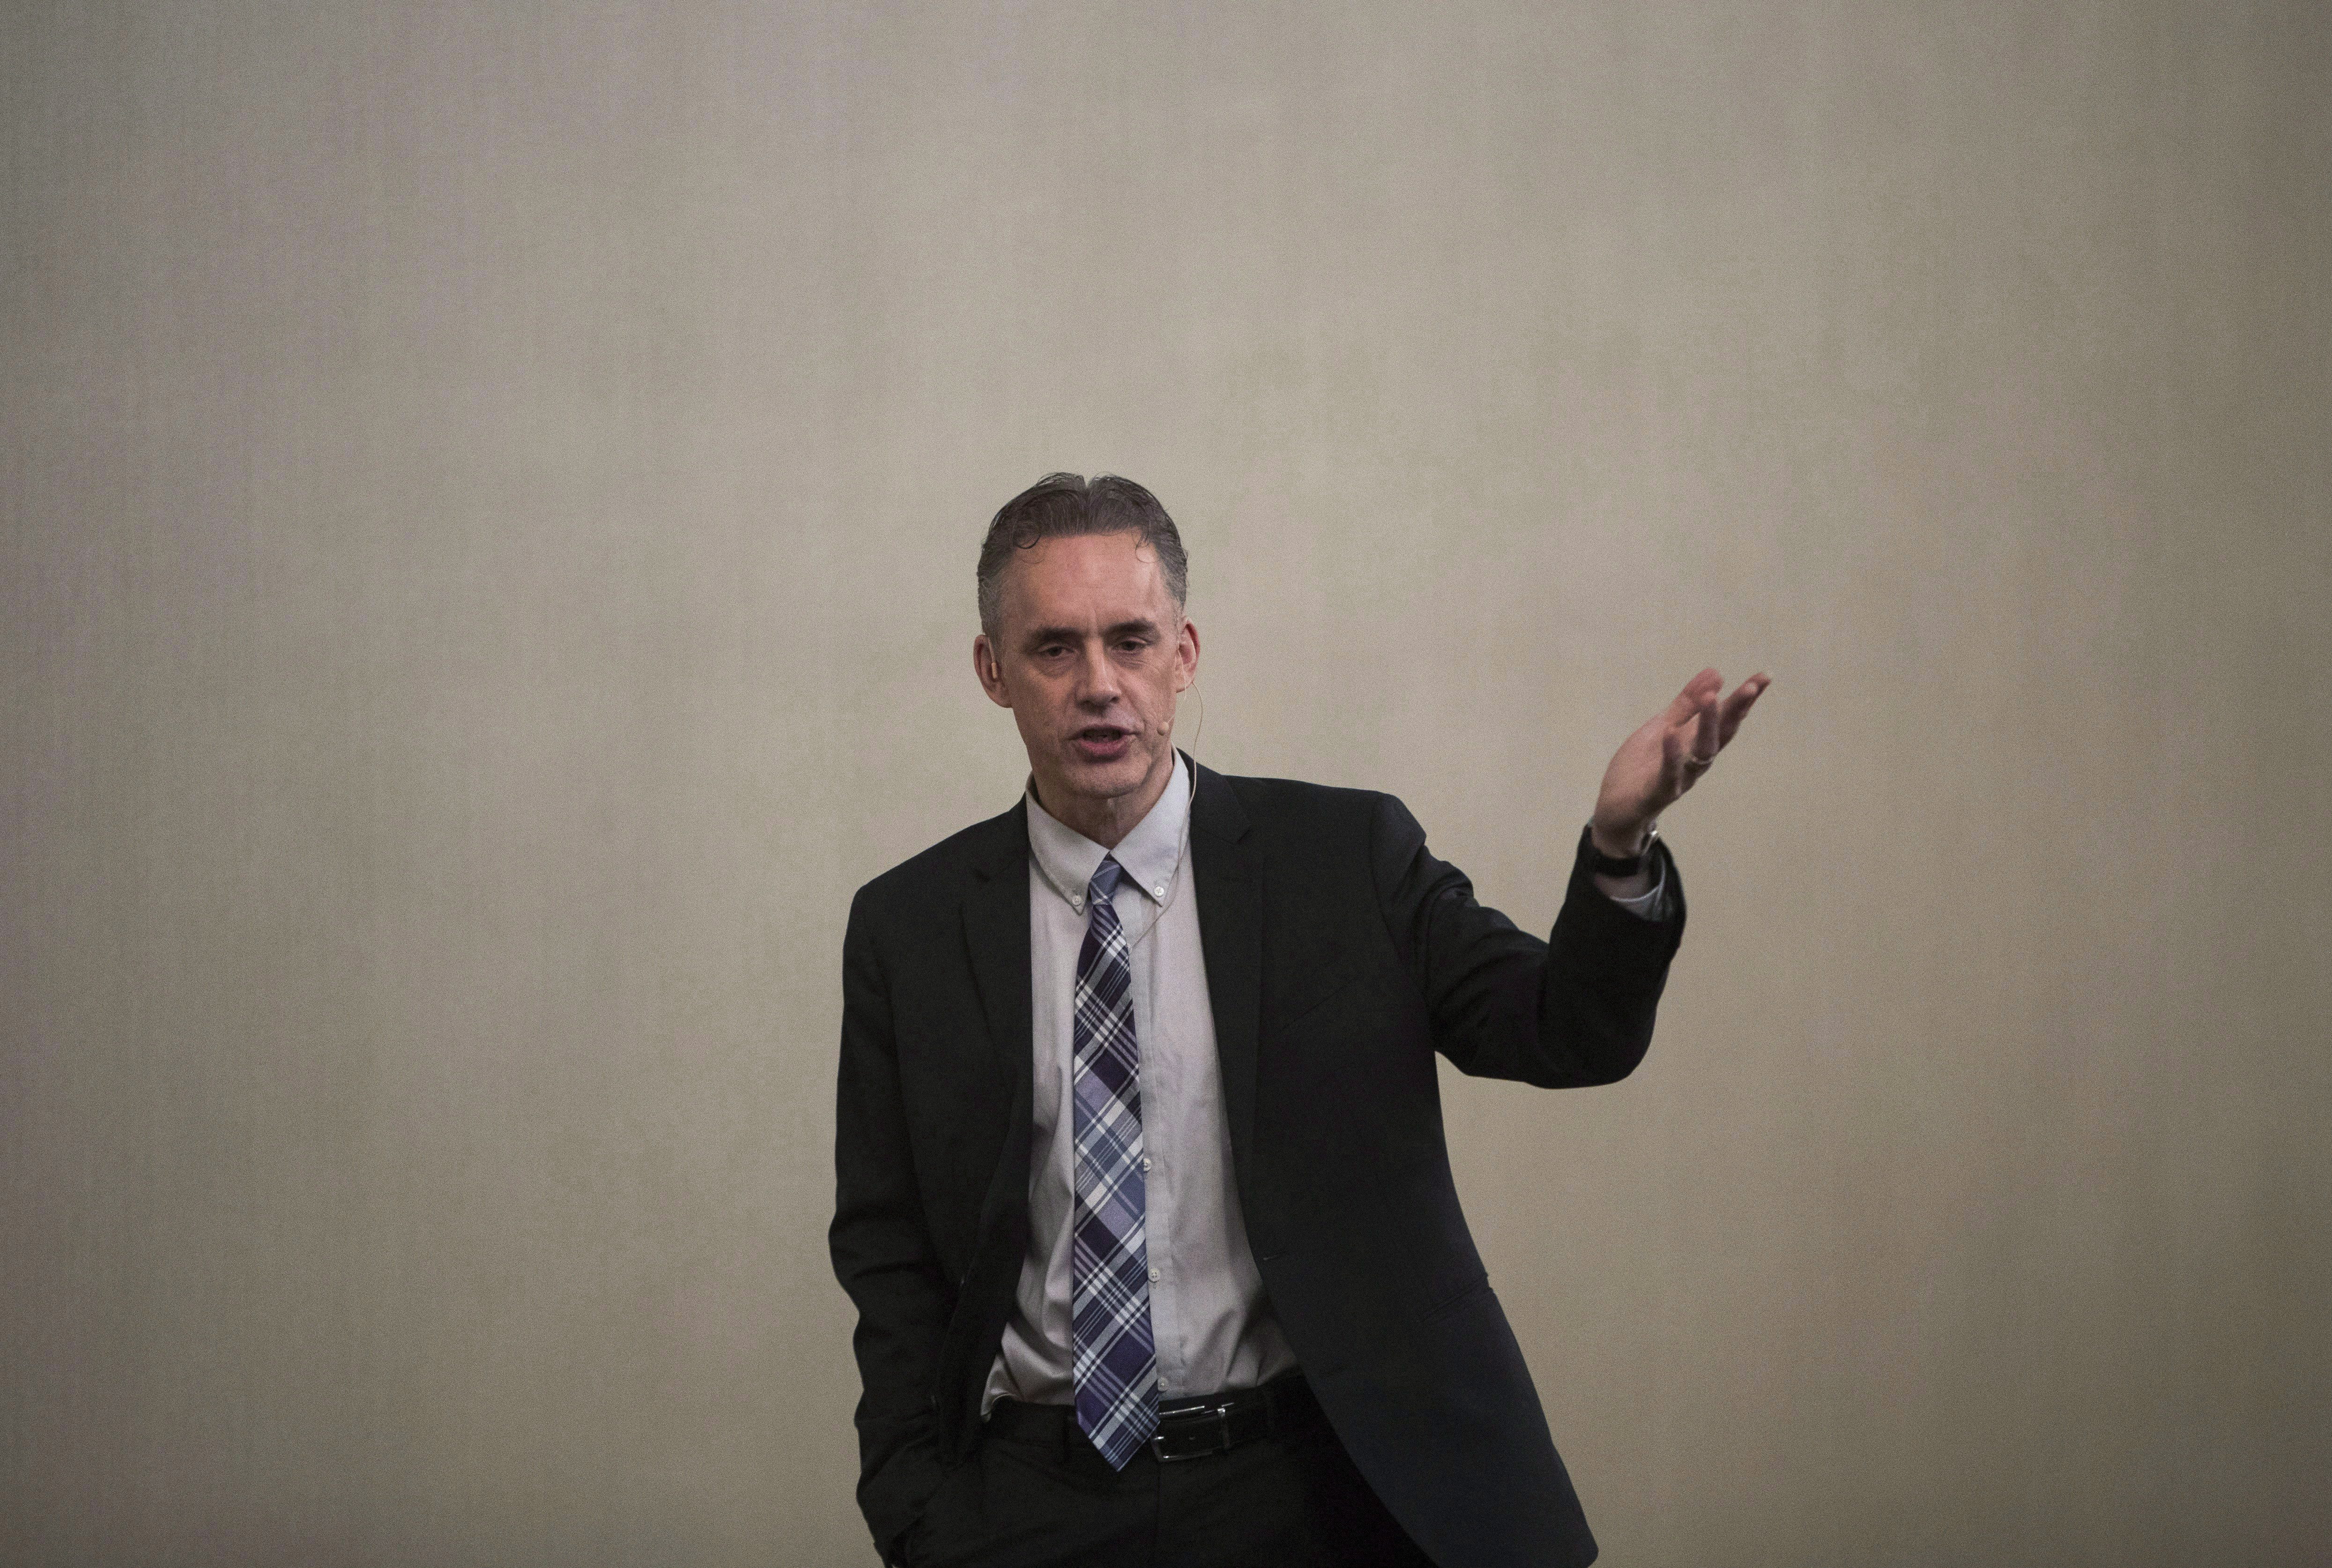 The context of Jordan Peterson's thoughts on 'enforced